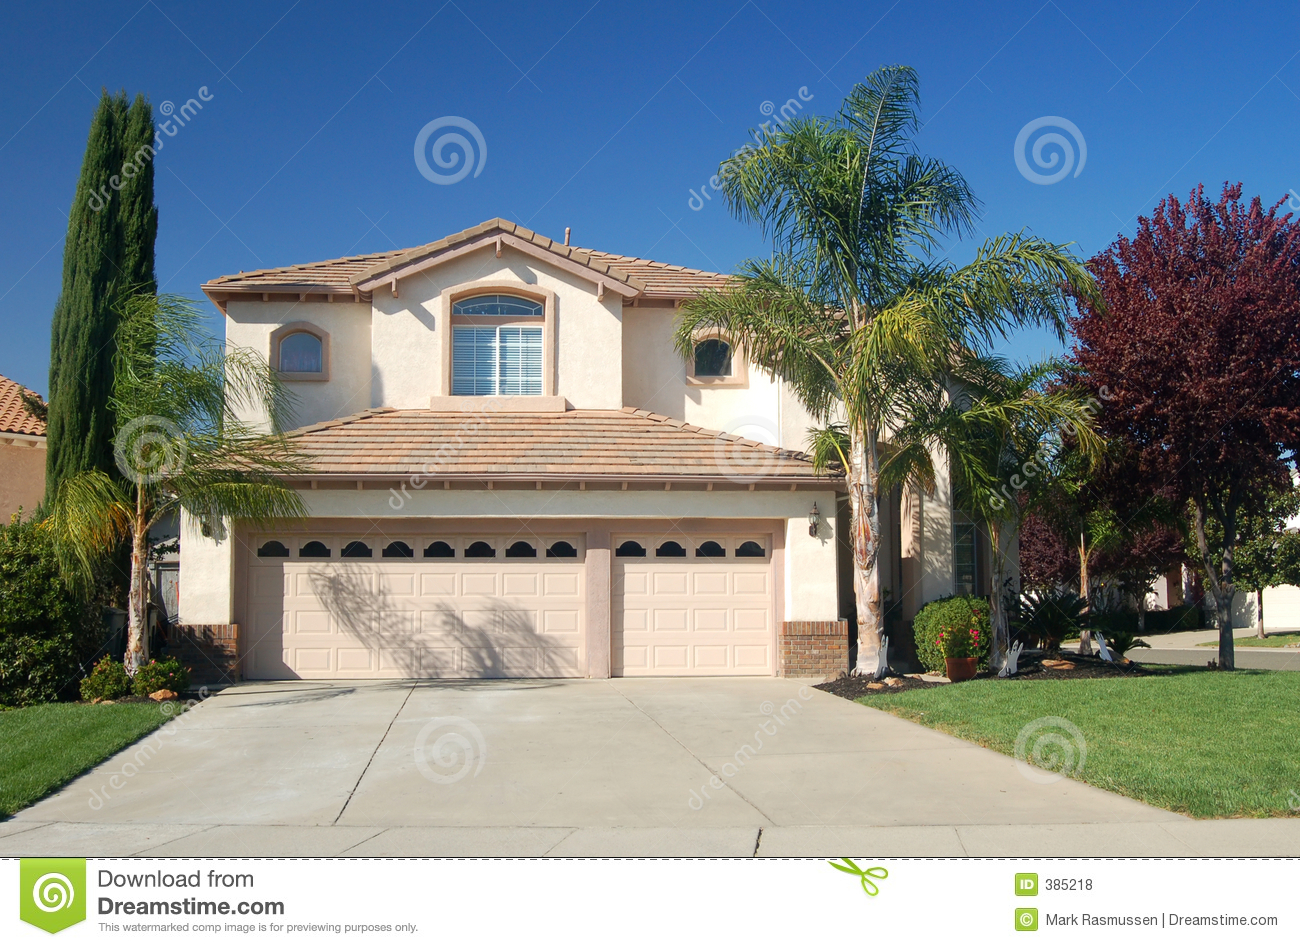 Nice house in california royalty free stock photos image for Nice home image